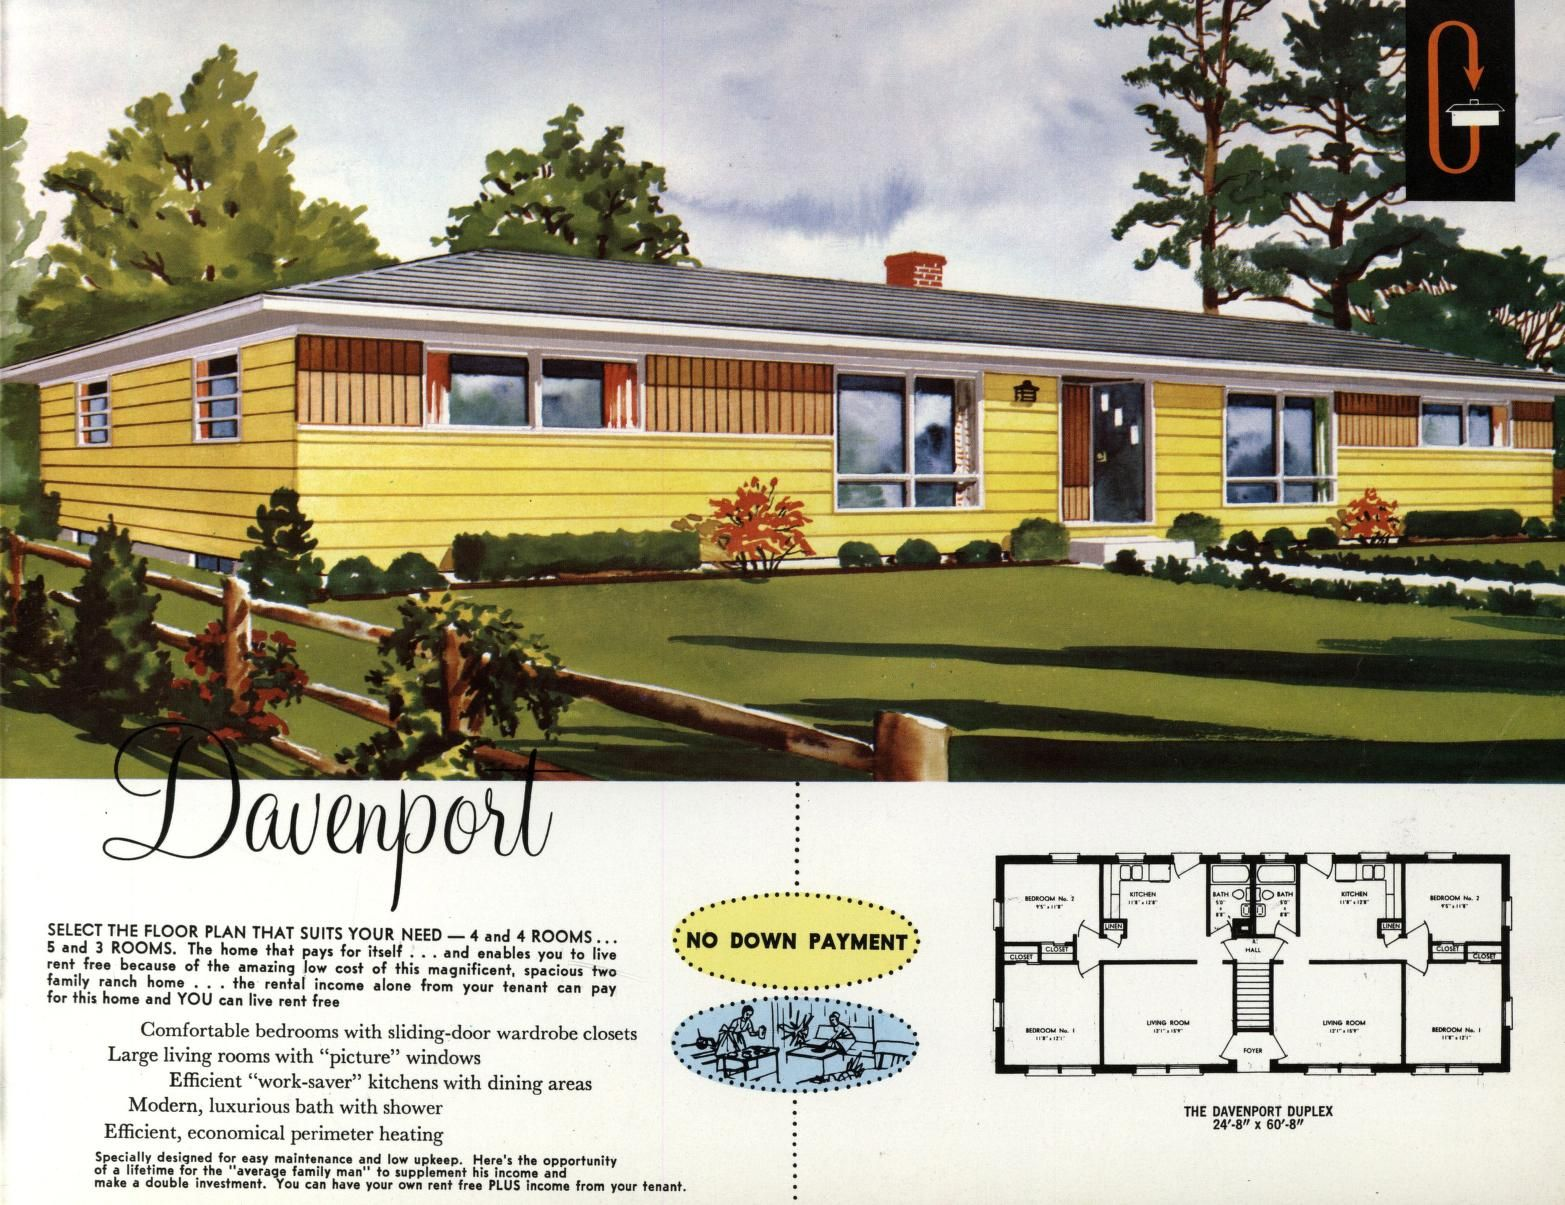 Grossman S Quality At Low Cost Homes L Grossman And Sons Inc Free Download Borrow And Streaming Internet Archive Vintage House Plans Mid Century Modern House Plans American Houses